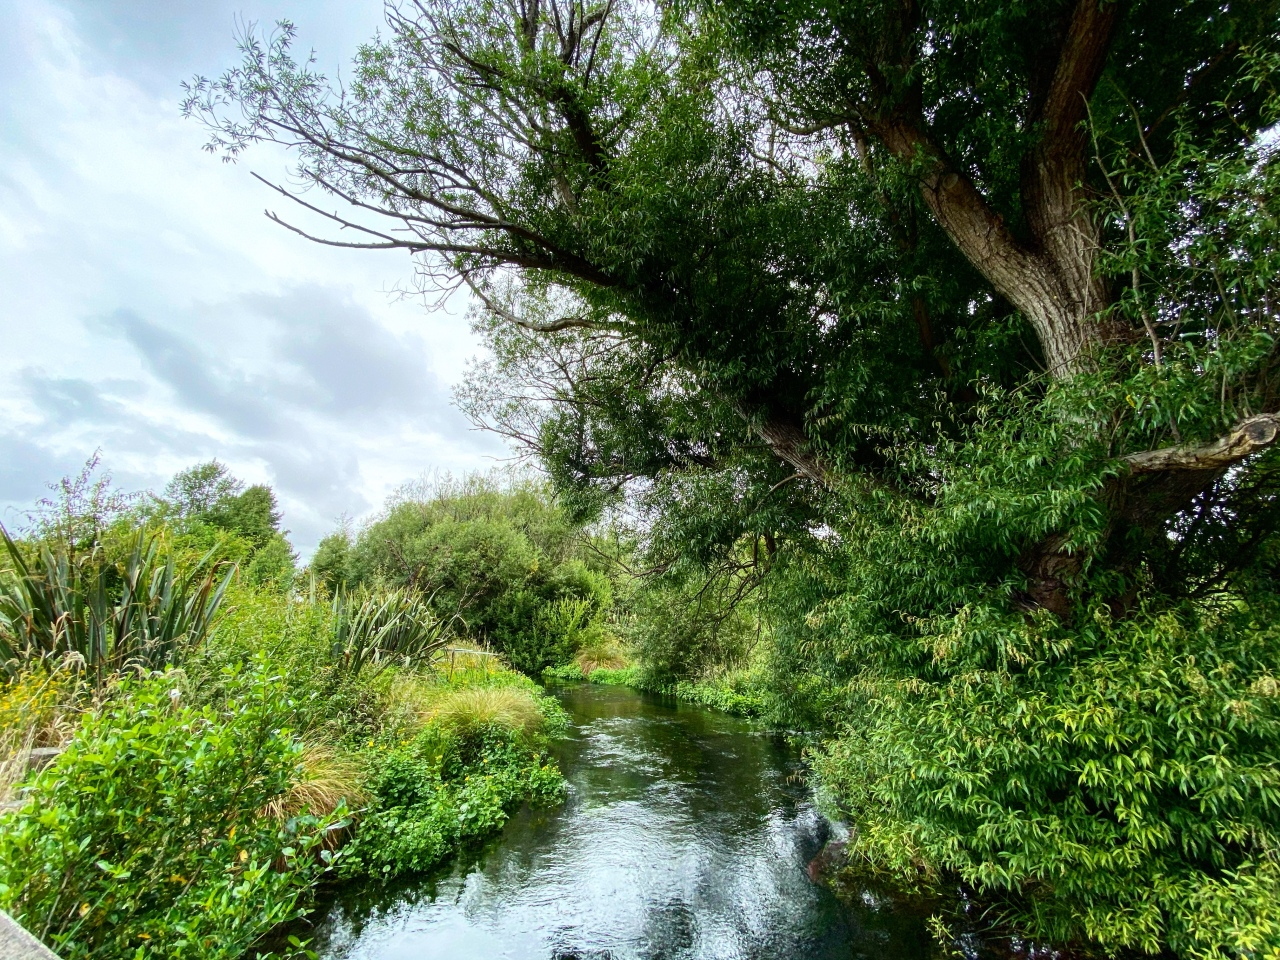 The Styx River flows between native grasses and plants with a large, old tree on the right bank in the Styx Mill Conservation Reserve in Christchurch, New Zealand